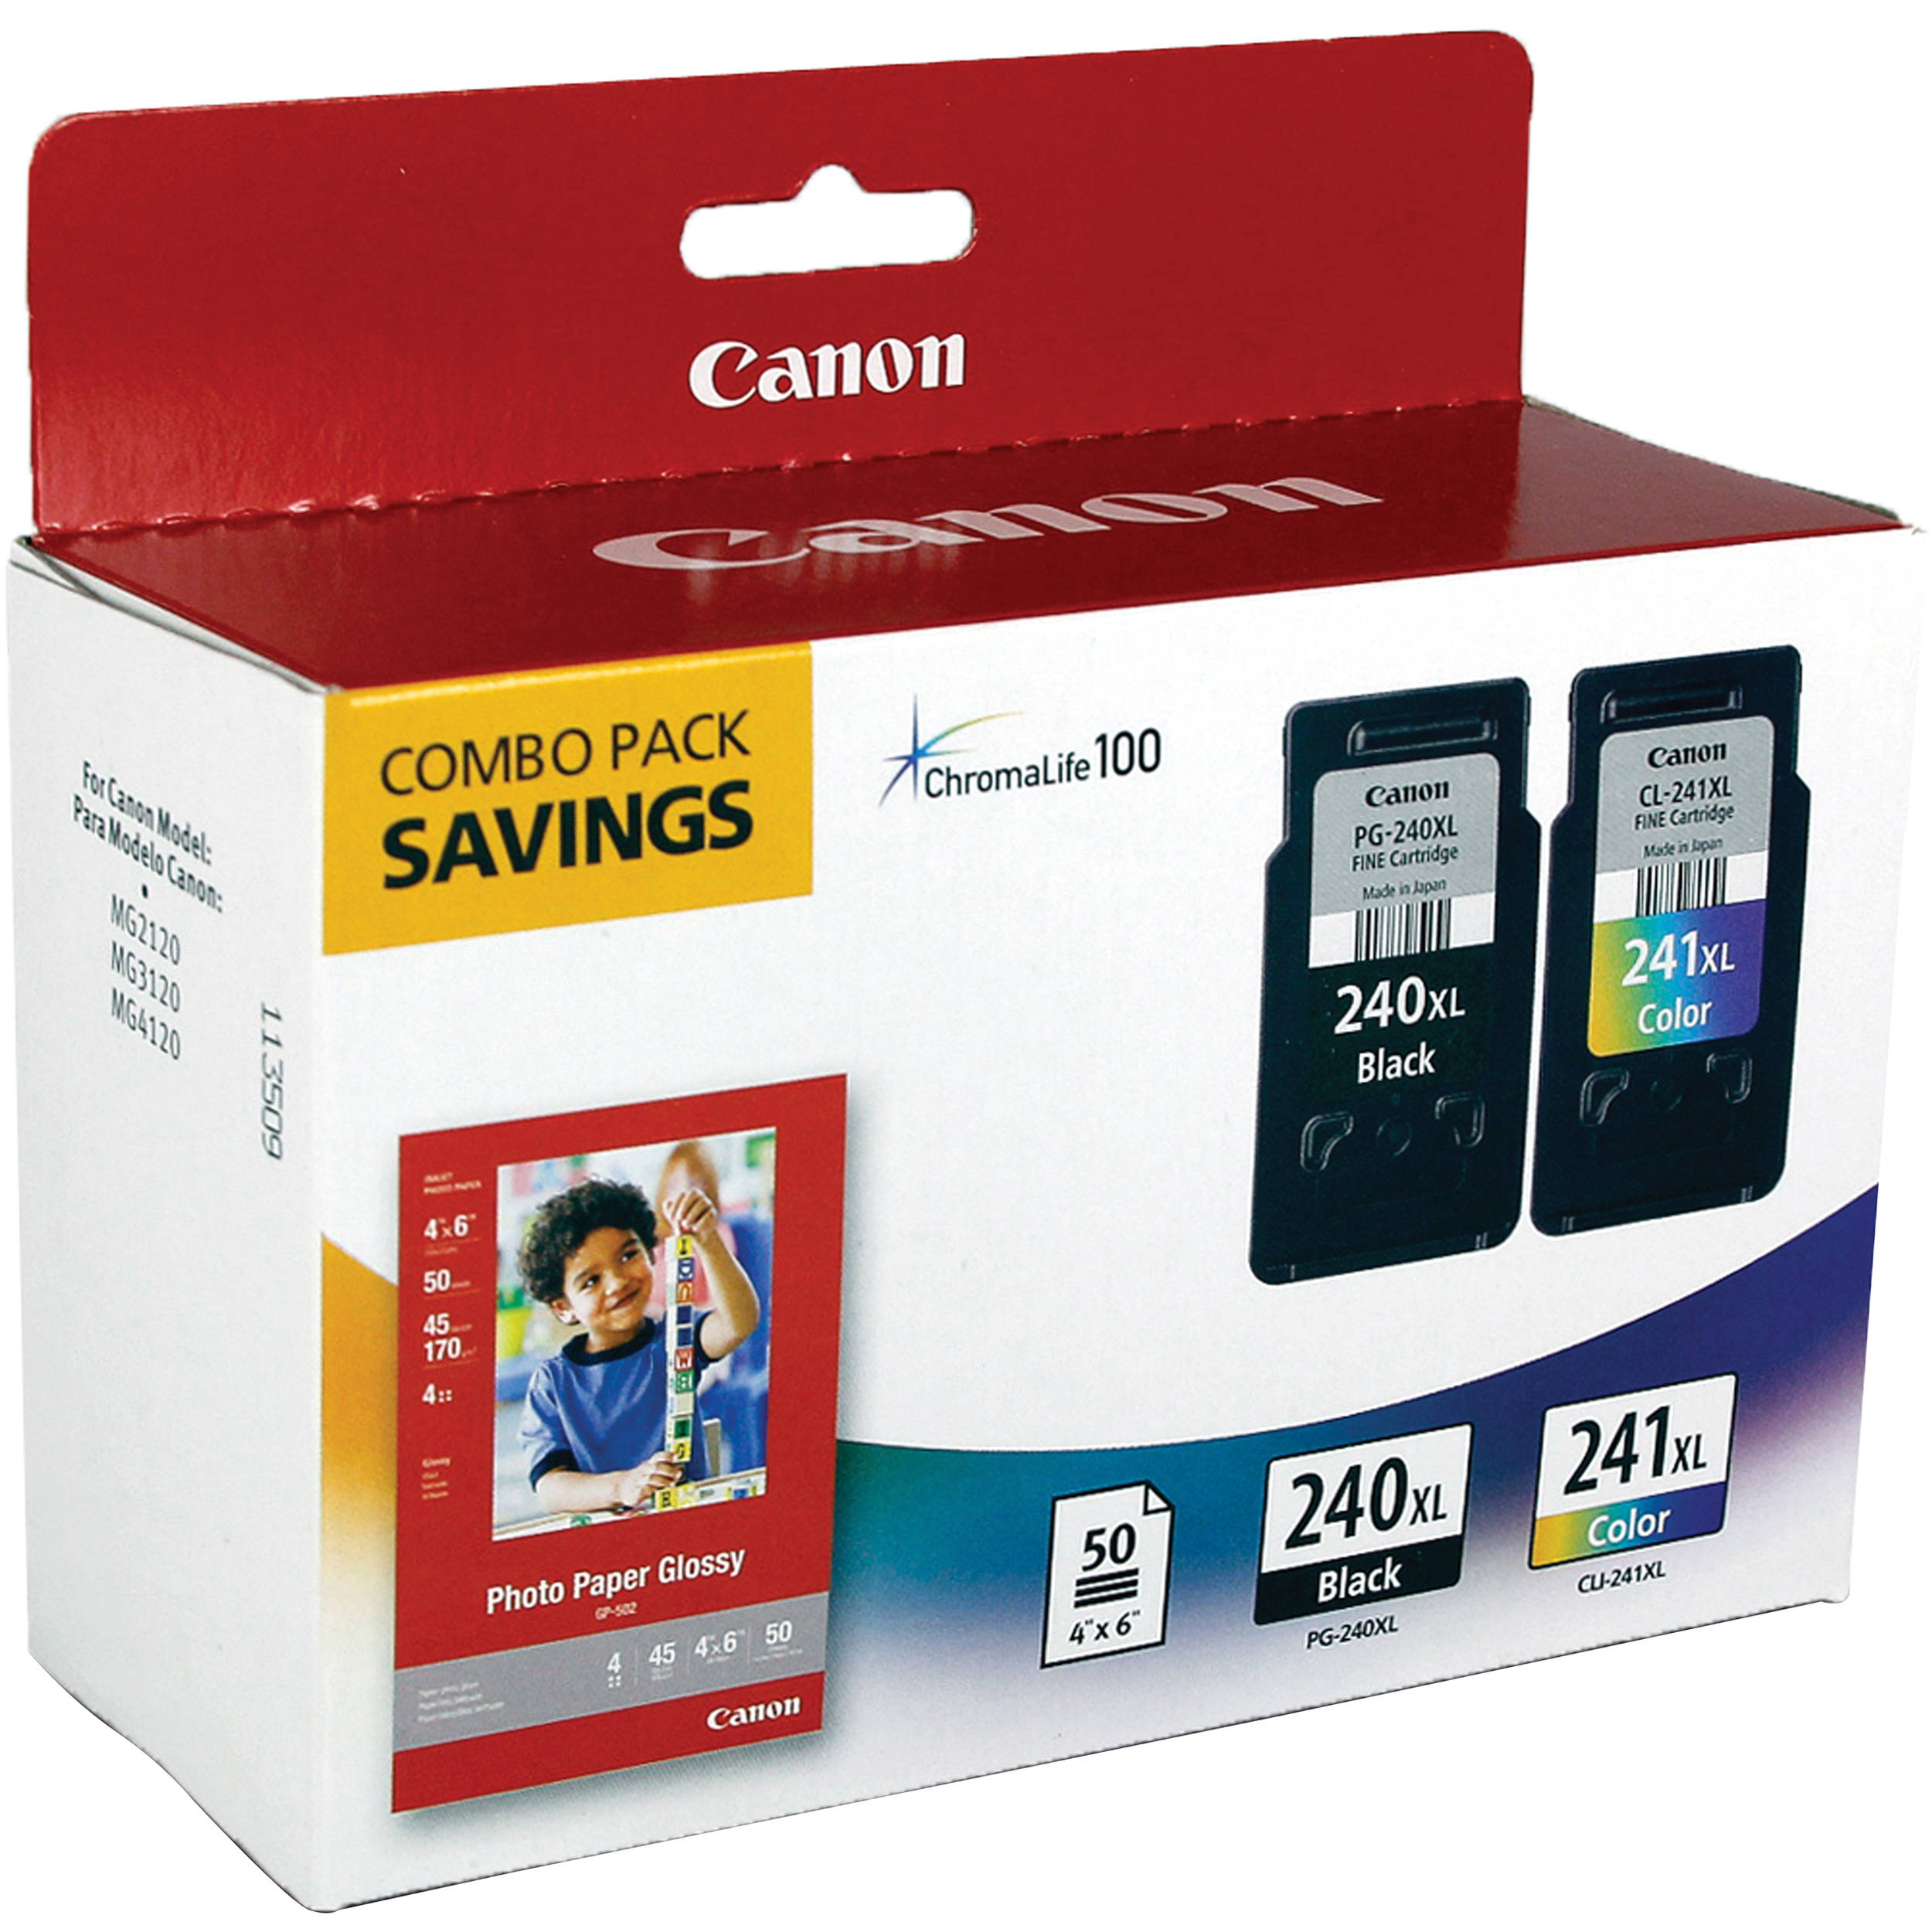 Canon PG-240XL / CL-241XL Ink Cartridge Combo Pack ...